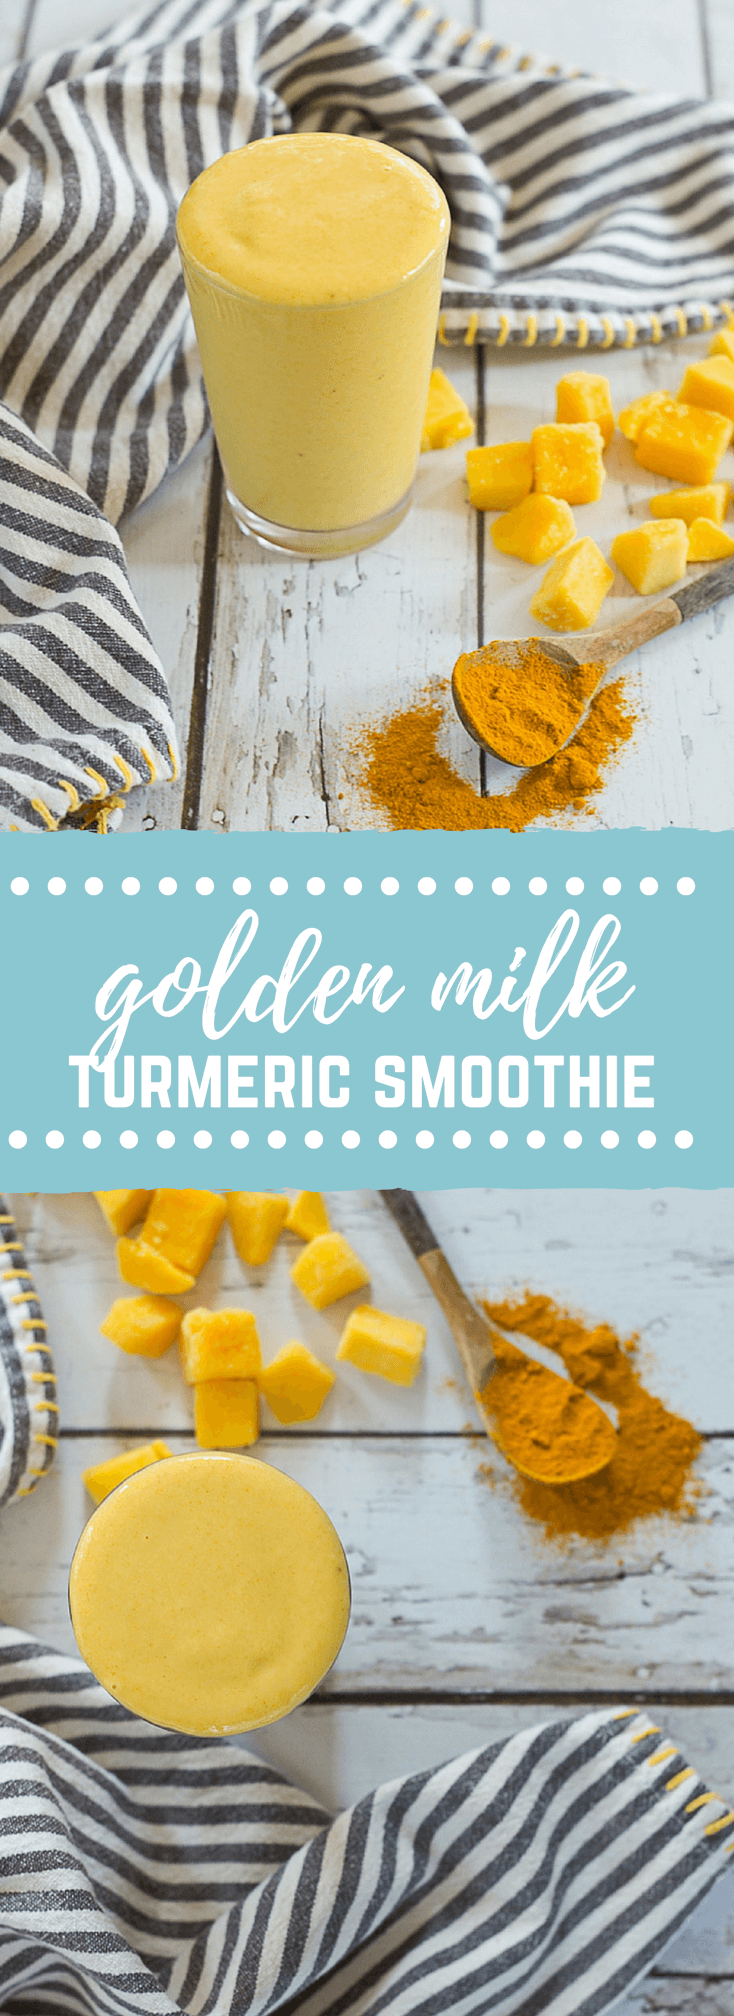 "This ""Golden Milk"" Turmeric Smoothie makes you feel good from the inside out. With only 4 ingredients, it's easy to prepare this delightful smoothie. Turmeric, the superstar in this smoothie, is a bright yellow spice that acts as a powerful anti-inflammatory."